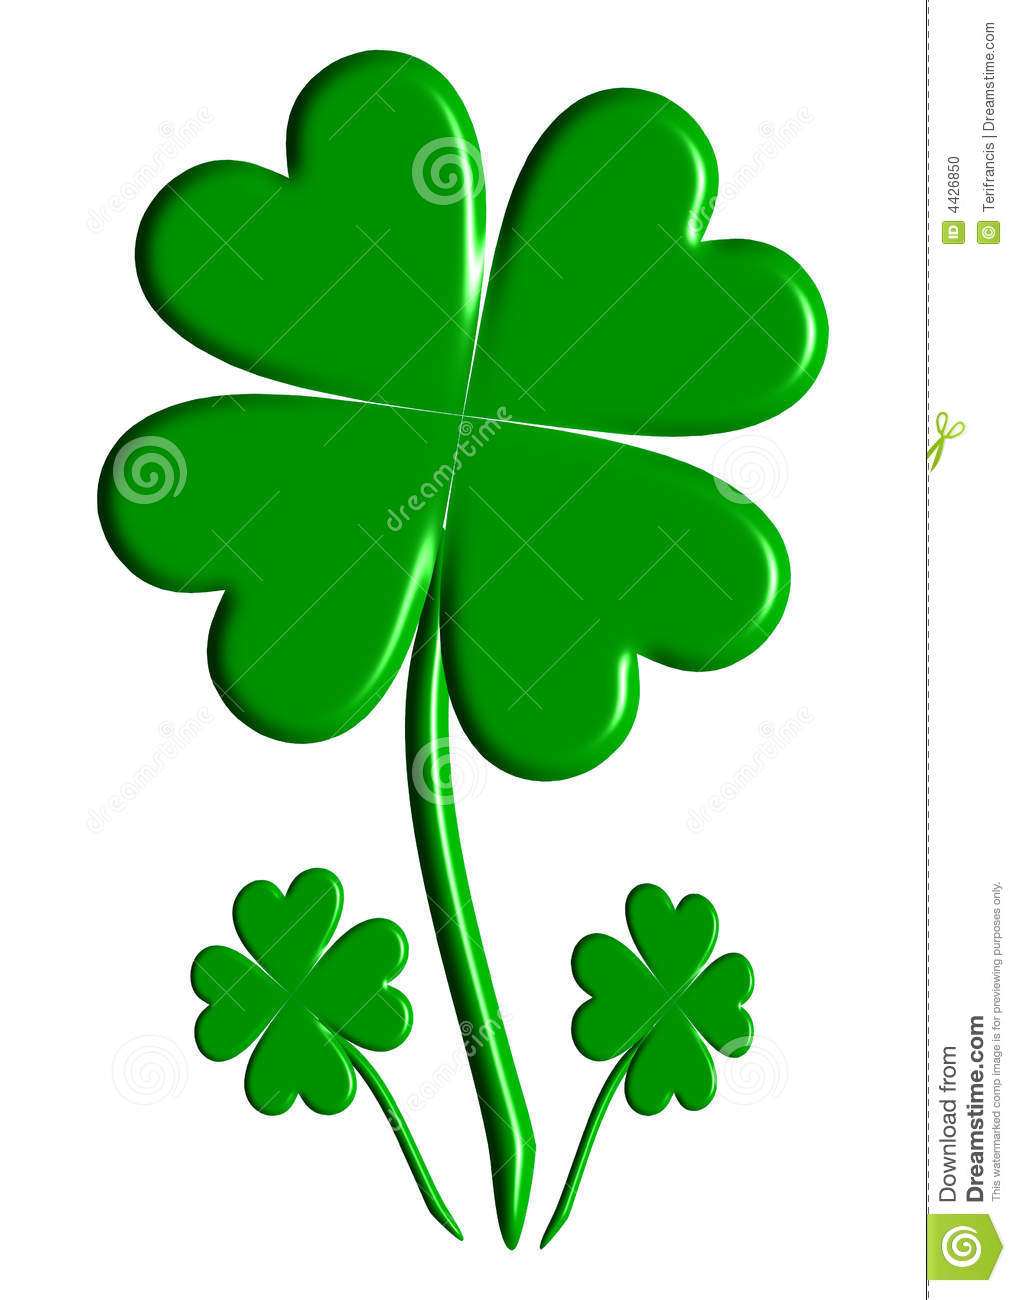 Three Lucky Four Leaf Clovers Stock Illustration Illustration Of